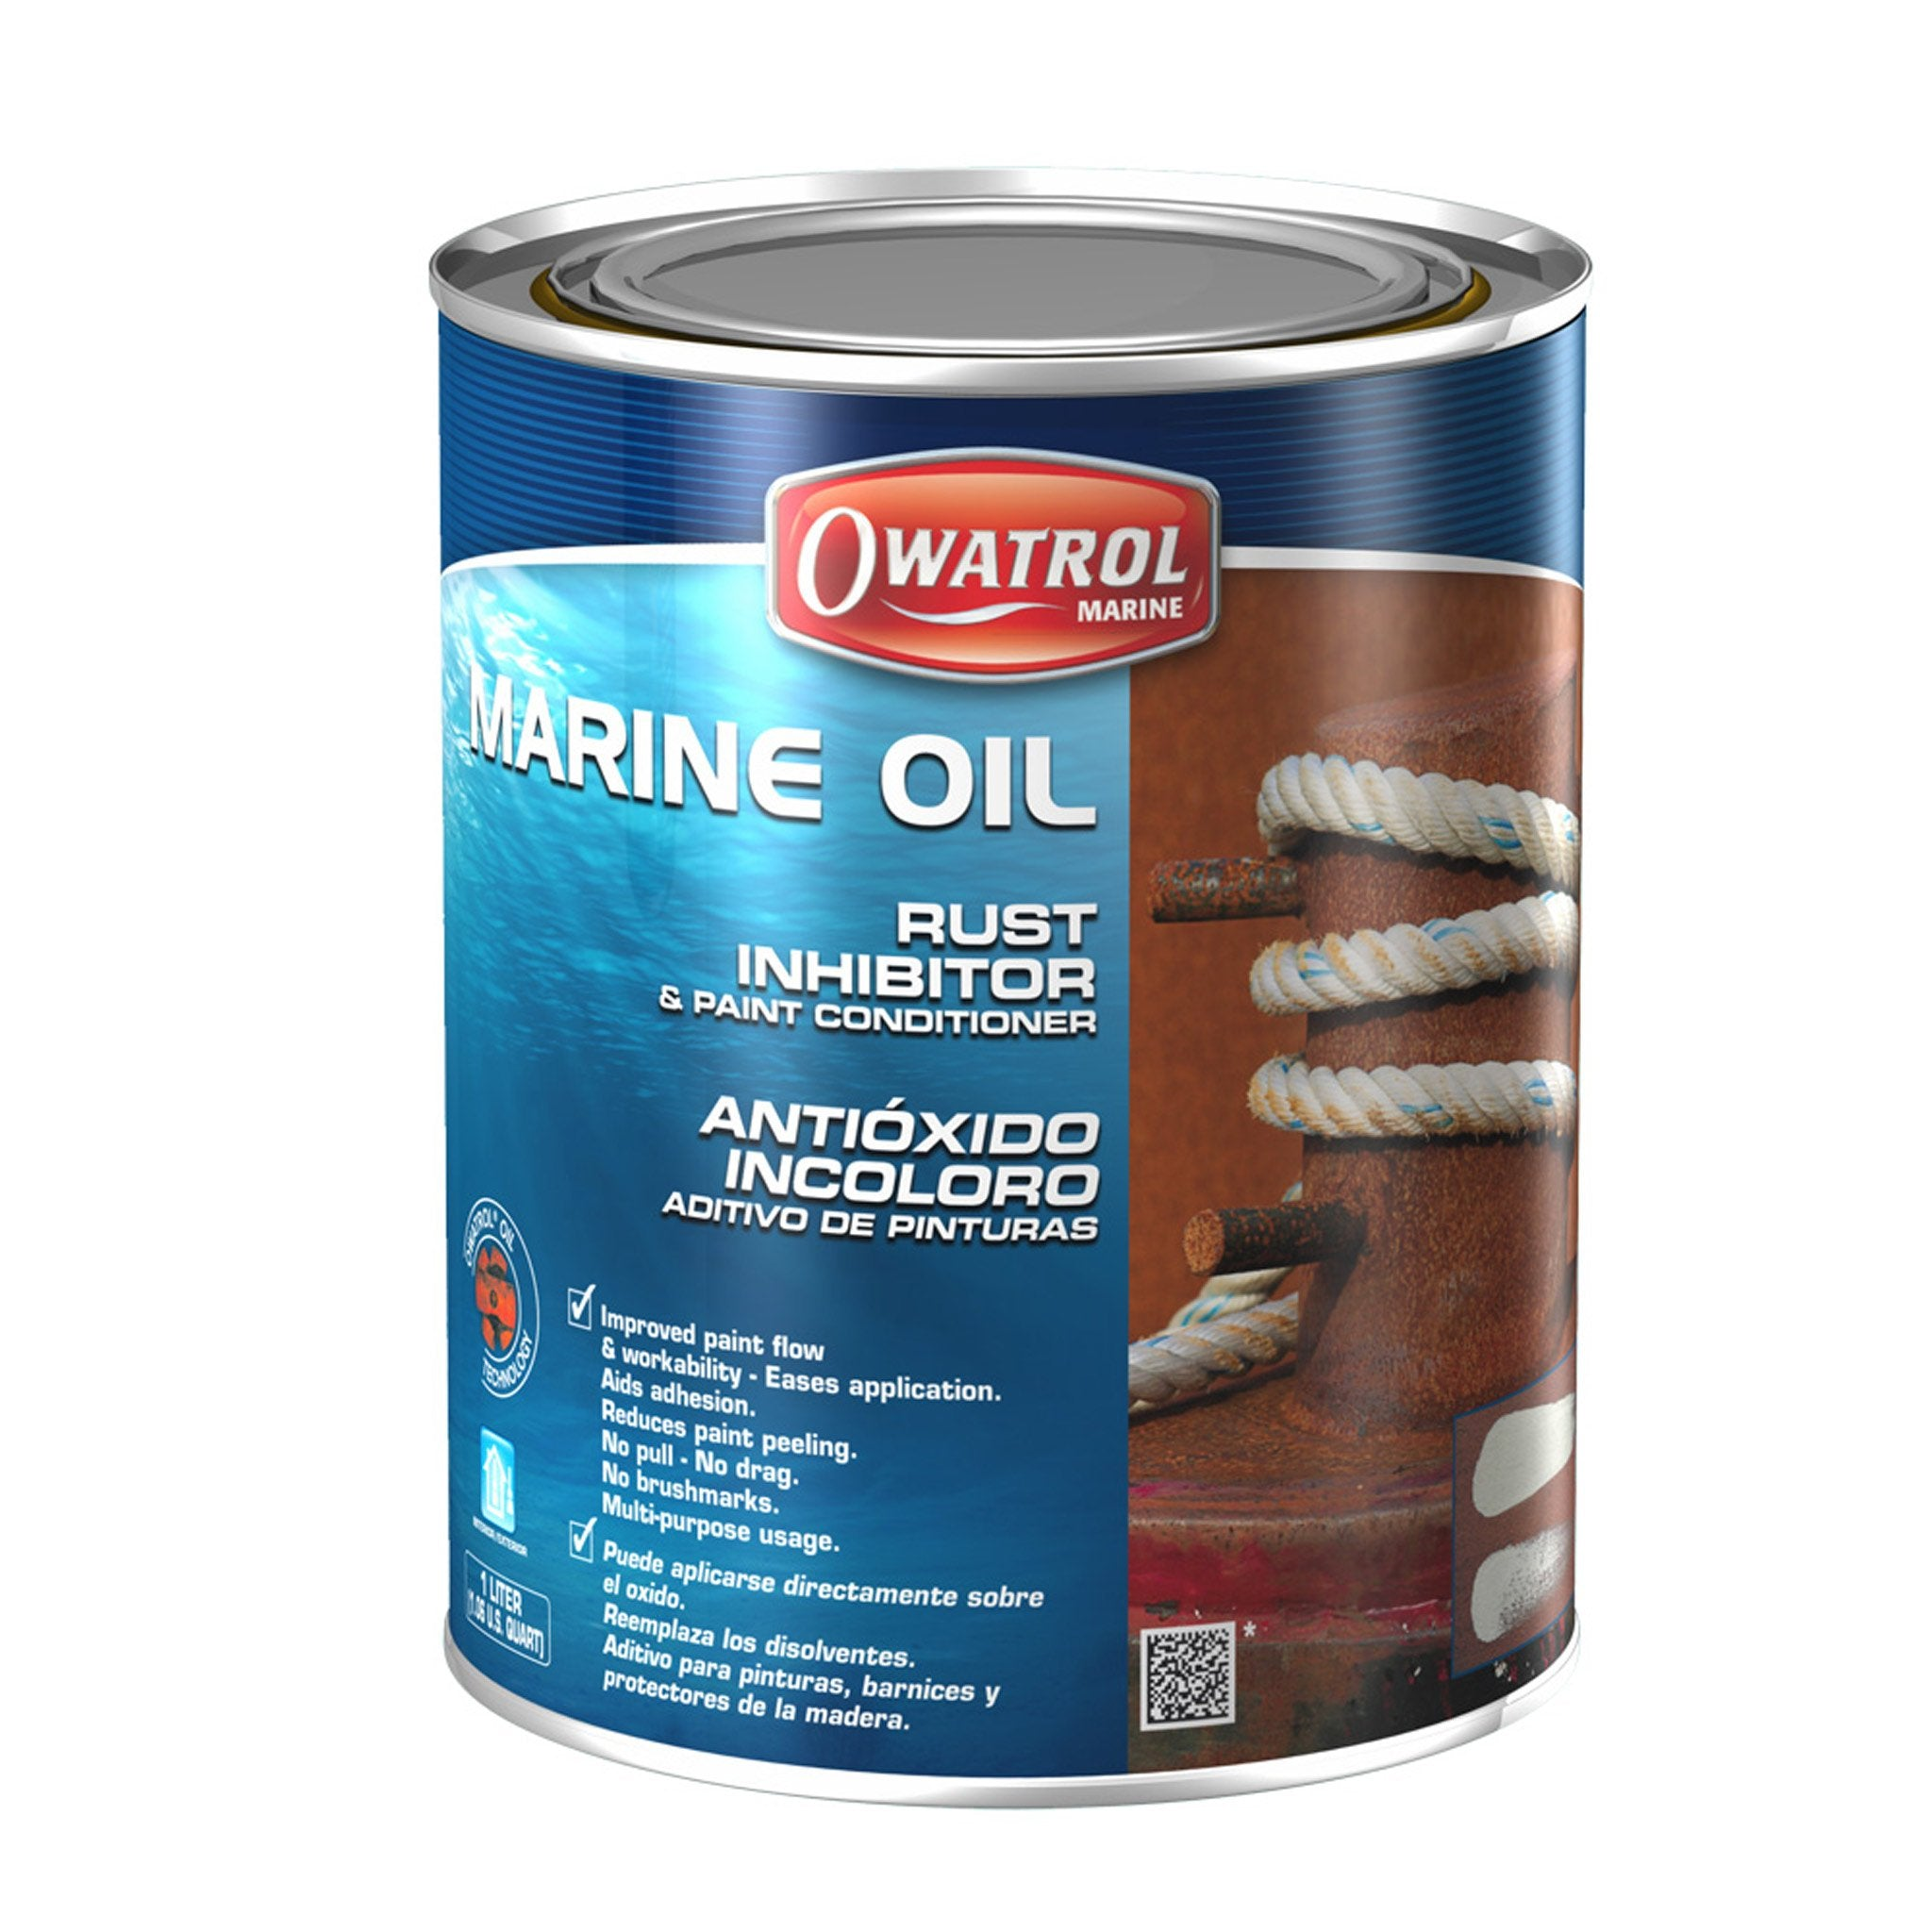 Owatrol Paint and Varnish Conditioner Rust Inhibitor - Arthur Beale